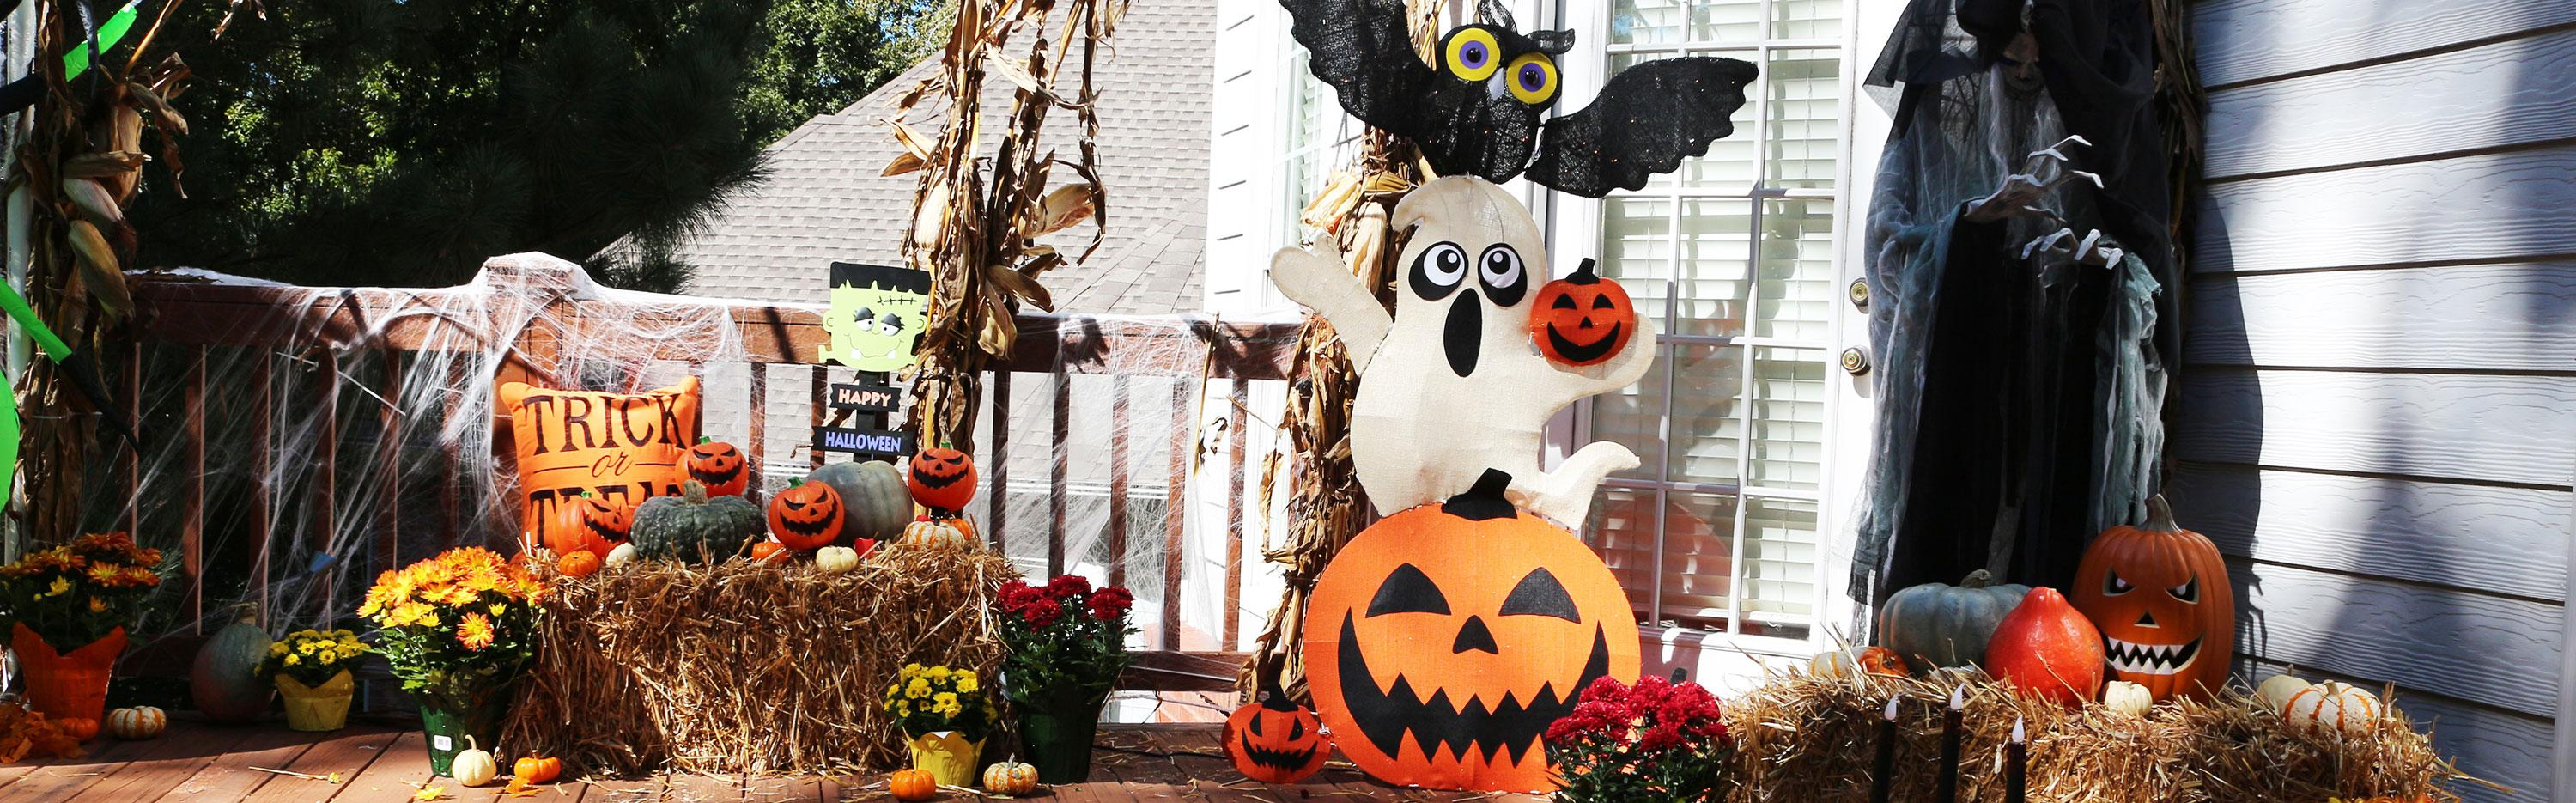 Halloween decor from The Home Depot